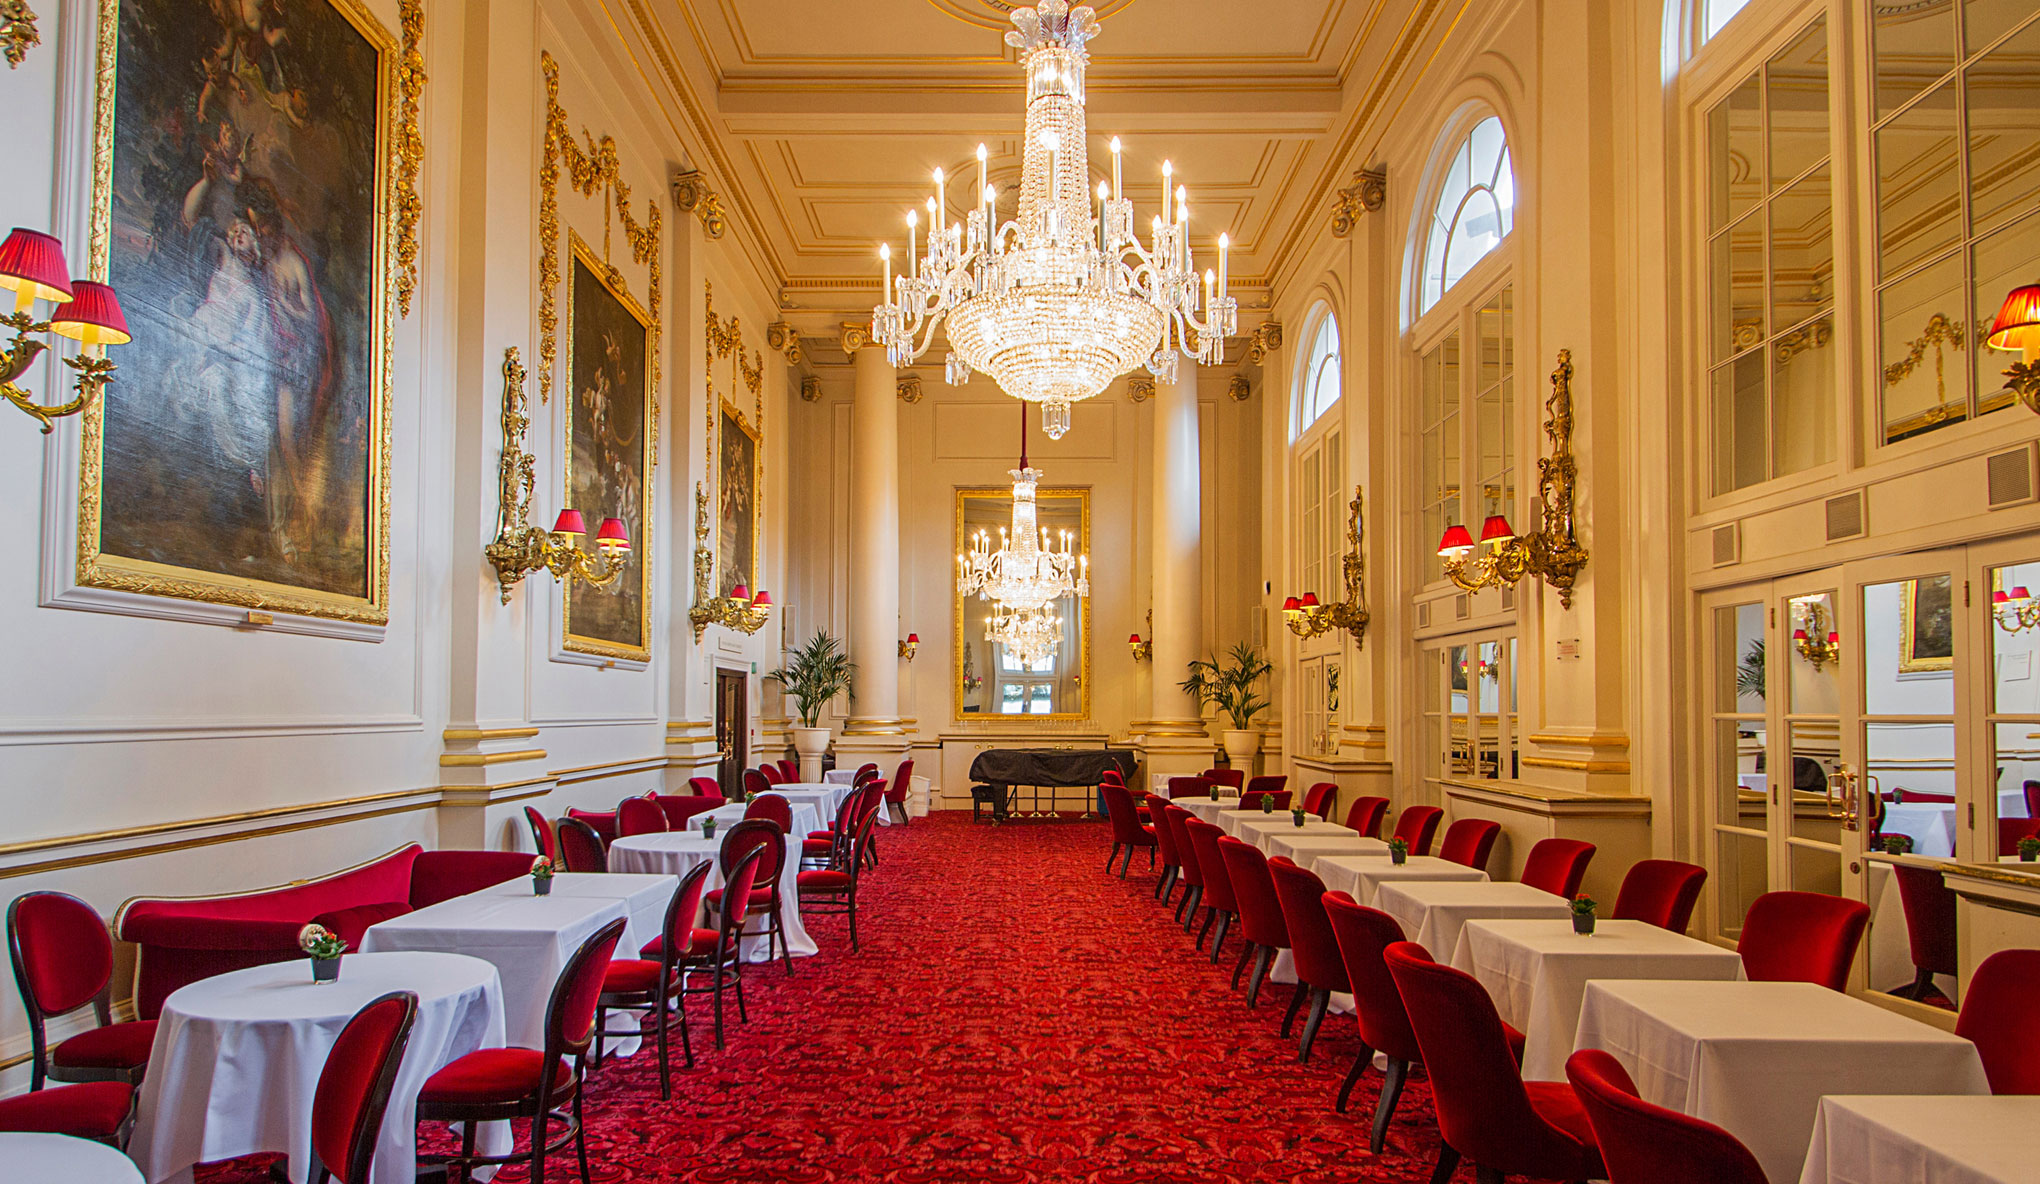 Dining tables laid out for a meal in the luxurious historic surroundings of the Crush Room